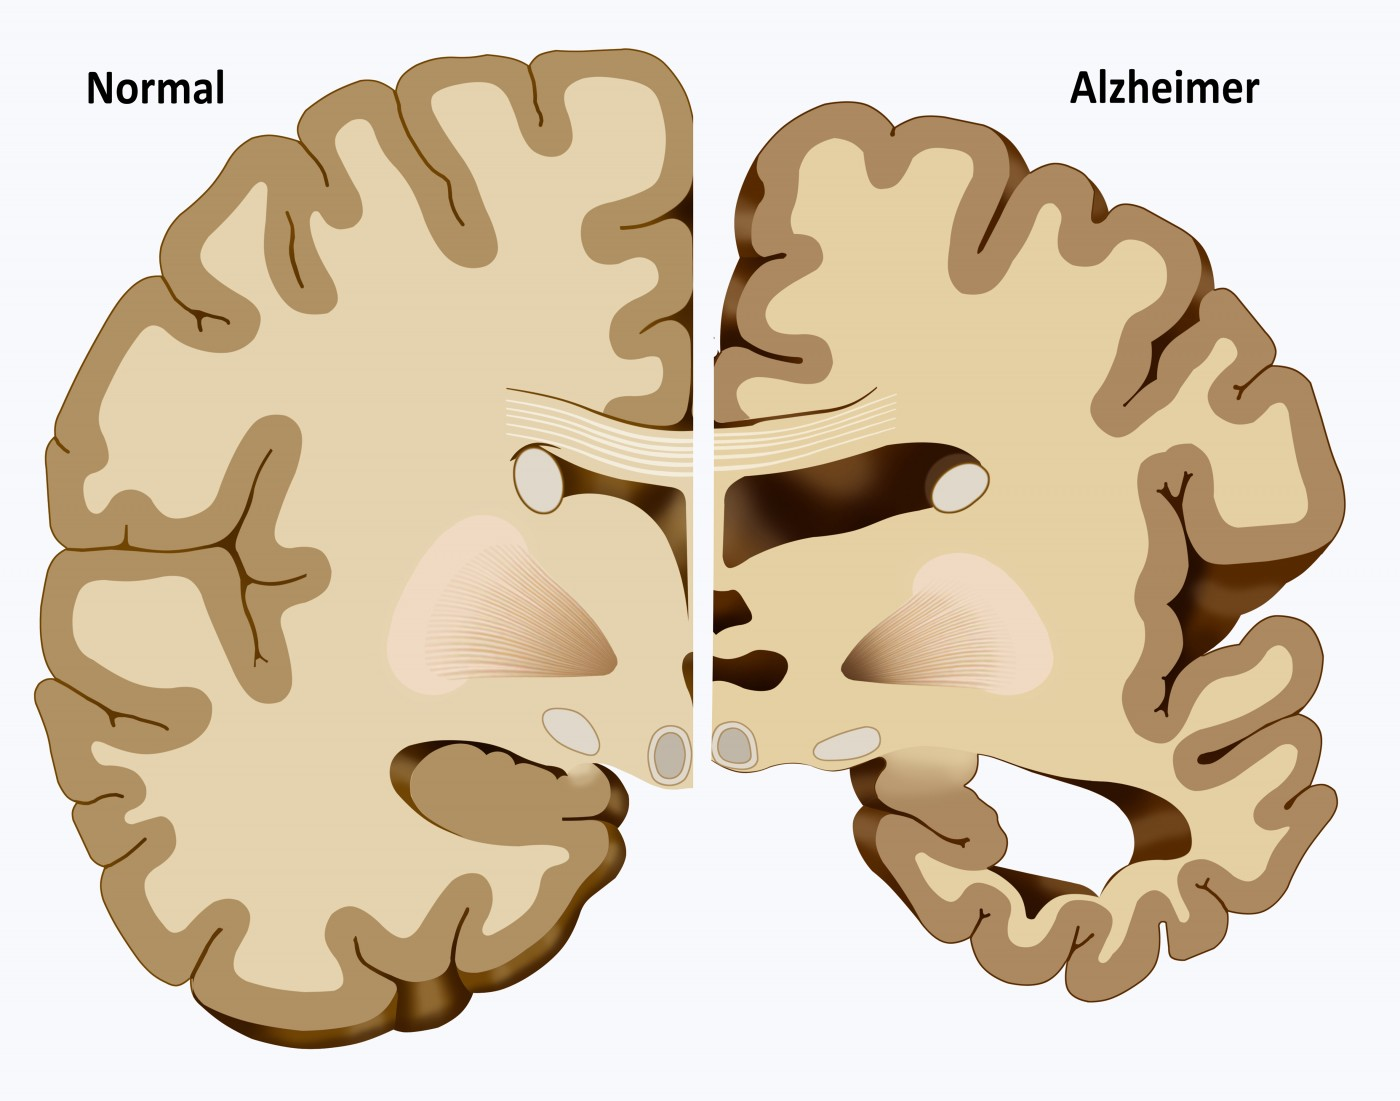 Evidence for Brain Glucose Dysregulation in Alzheimer's disease